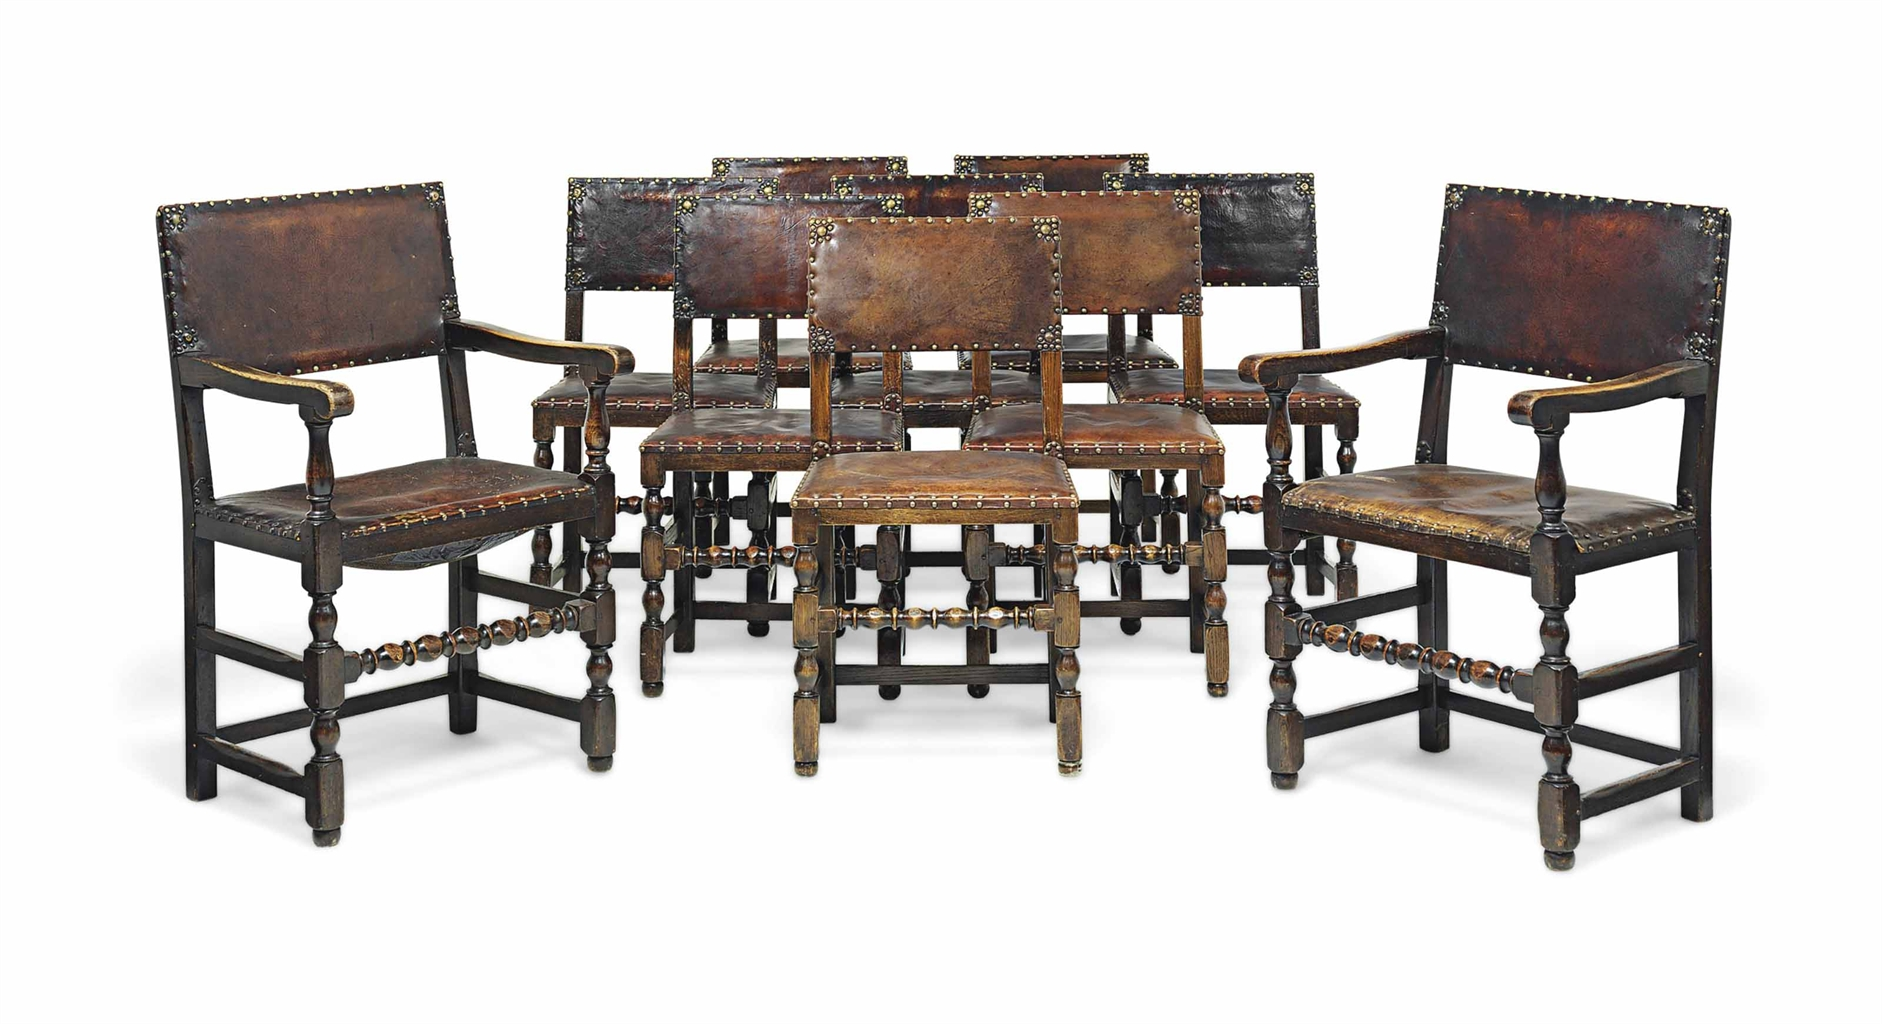 studded dining room chairs outdoor hanging lounge chair a set of ten oak and leather seven